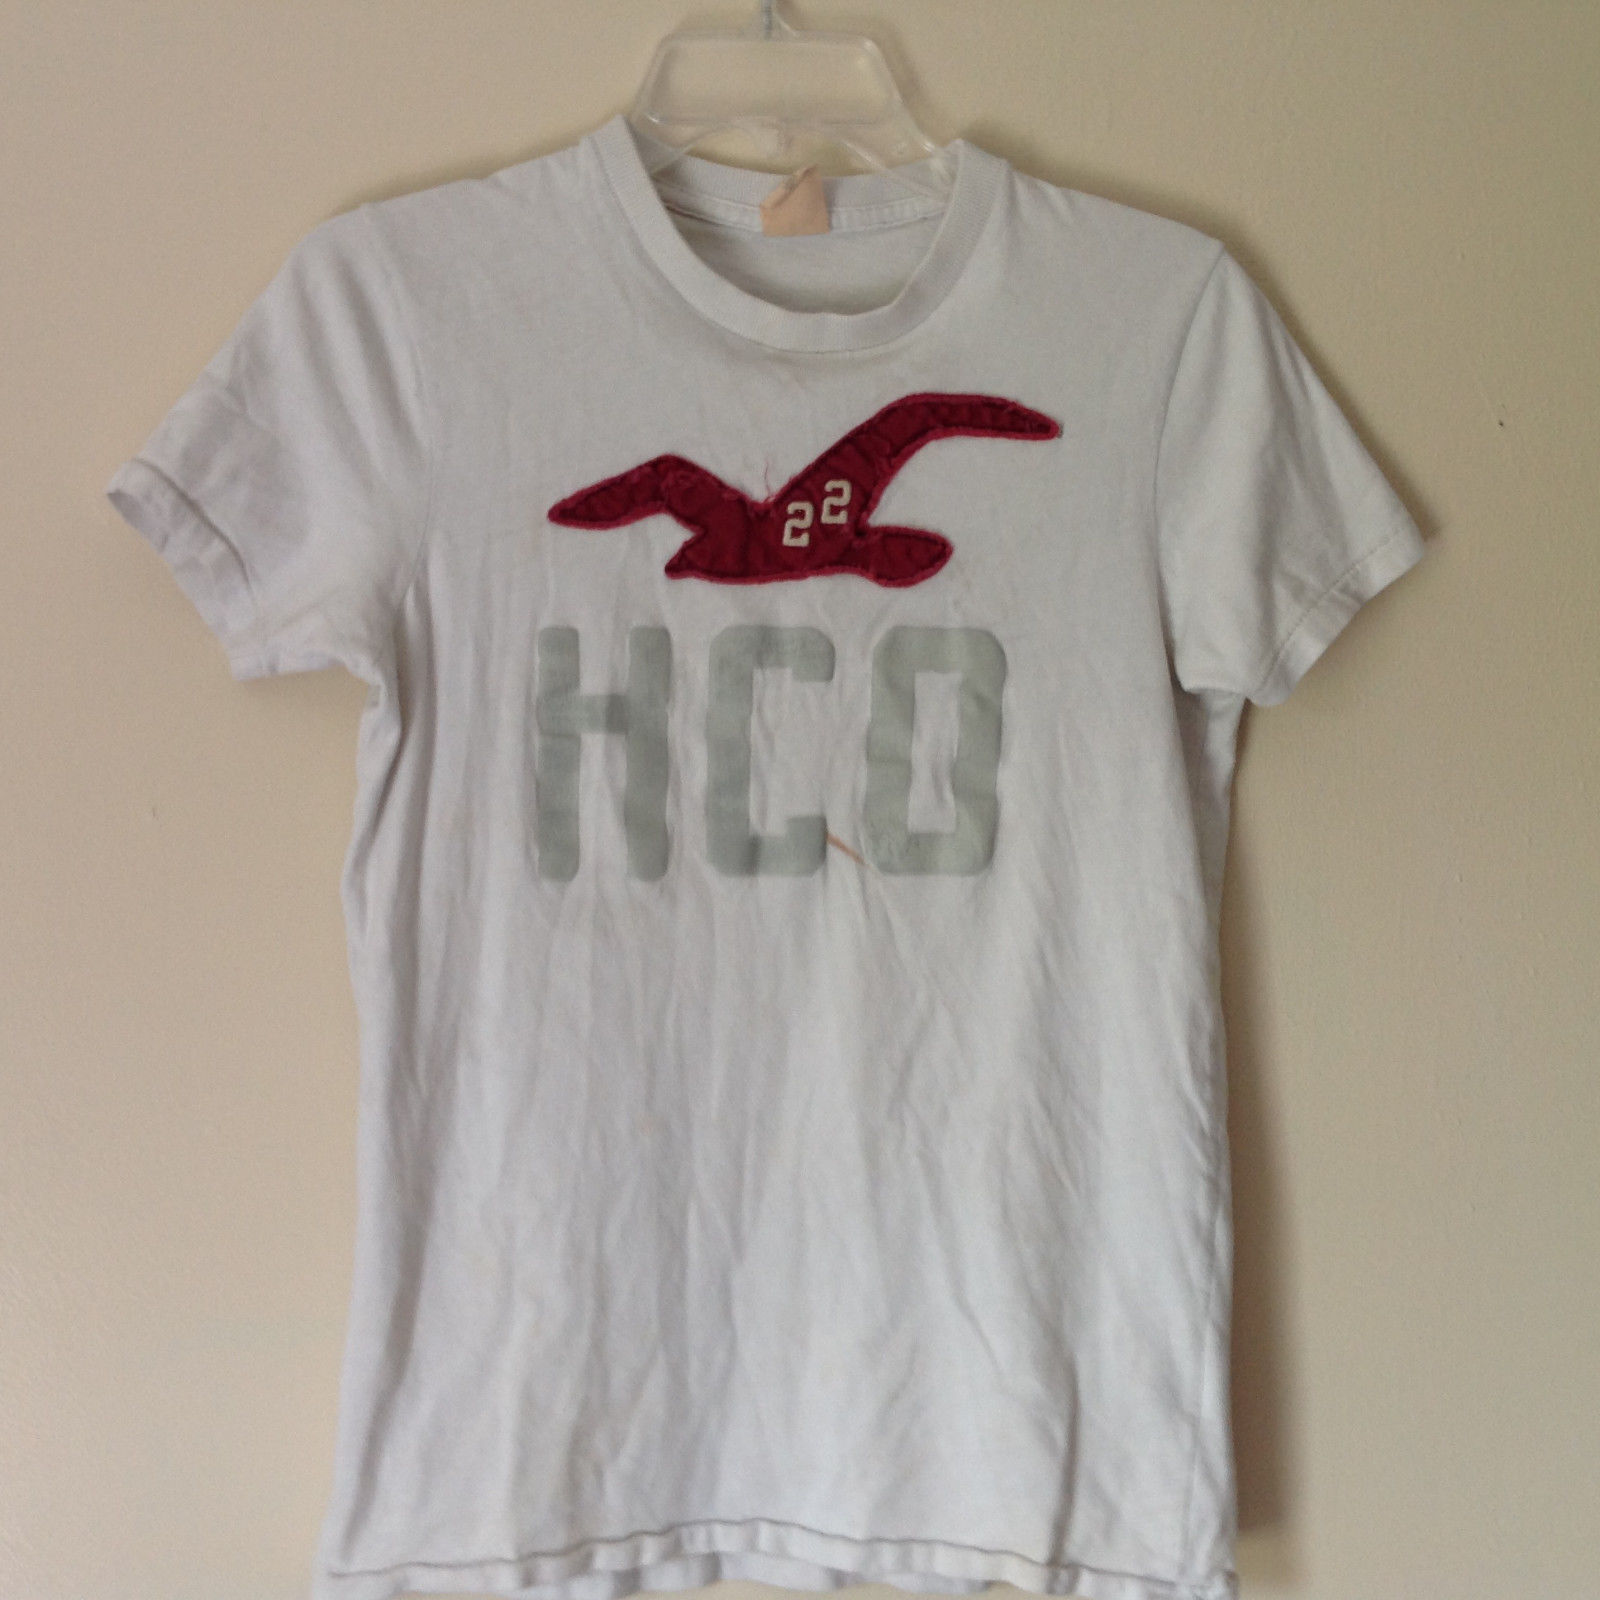 Hollister White Graphic T Shirt 100 Percent Cotton Short Sleeves Size Small